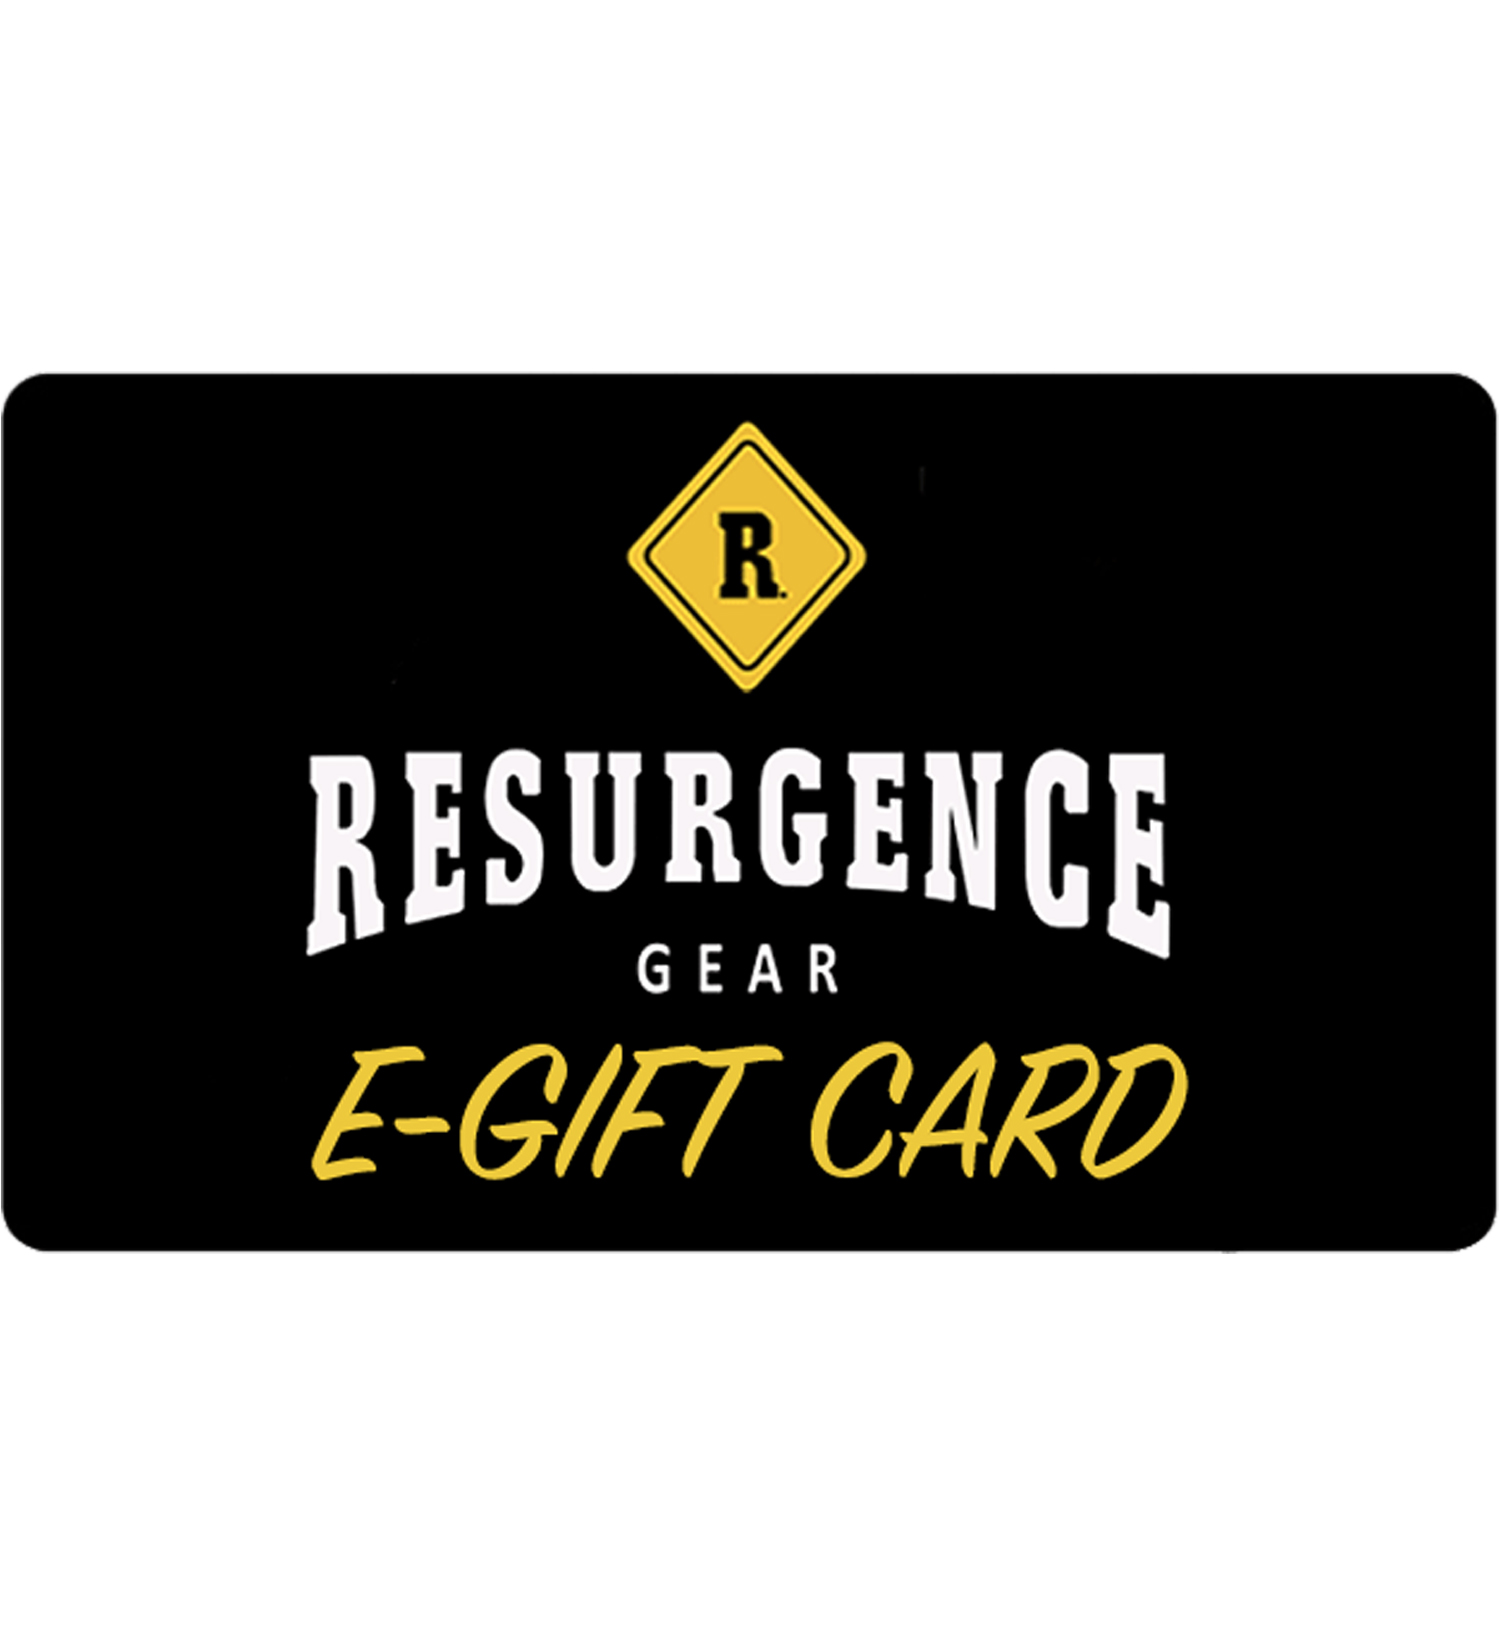 RESURGENCE GEAR : E-GIFT CARD